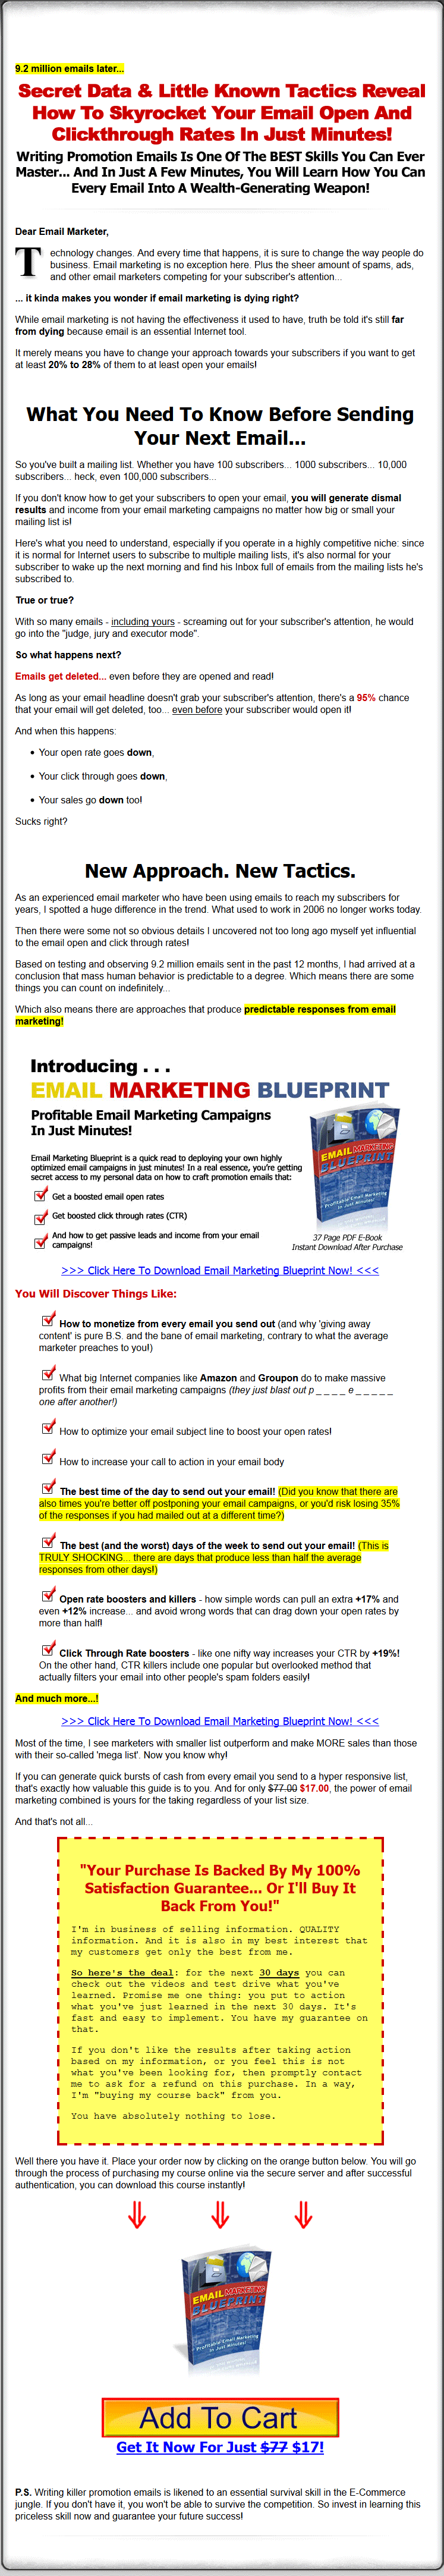 Email marketing email marketing blueprint mrr ebook malvernweather Gallery